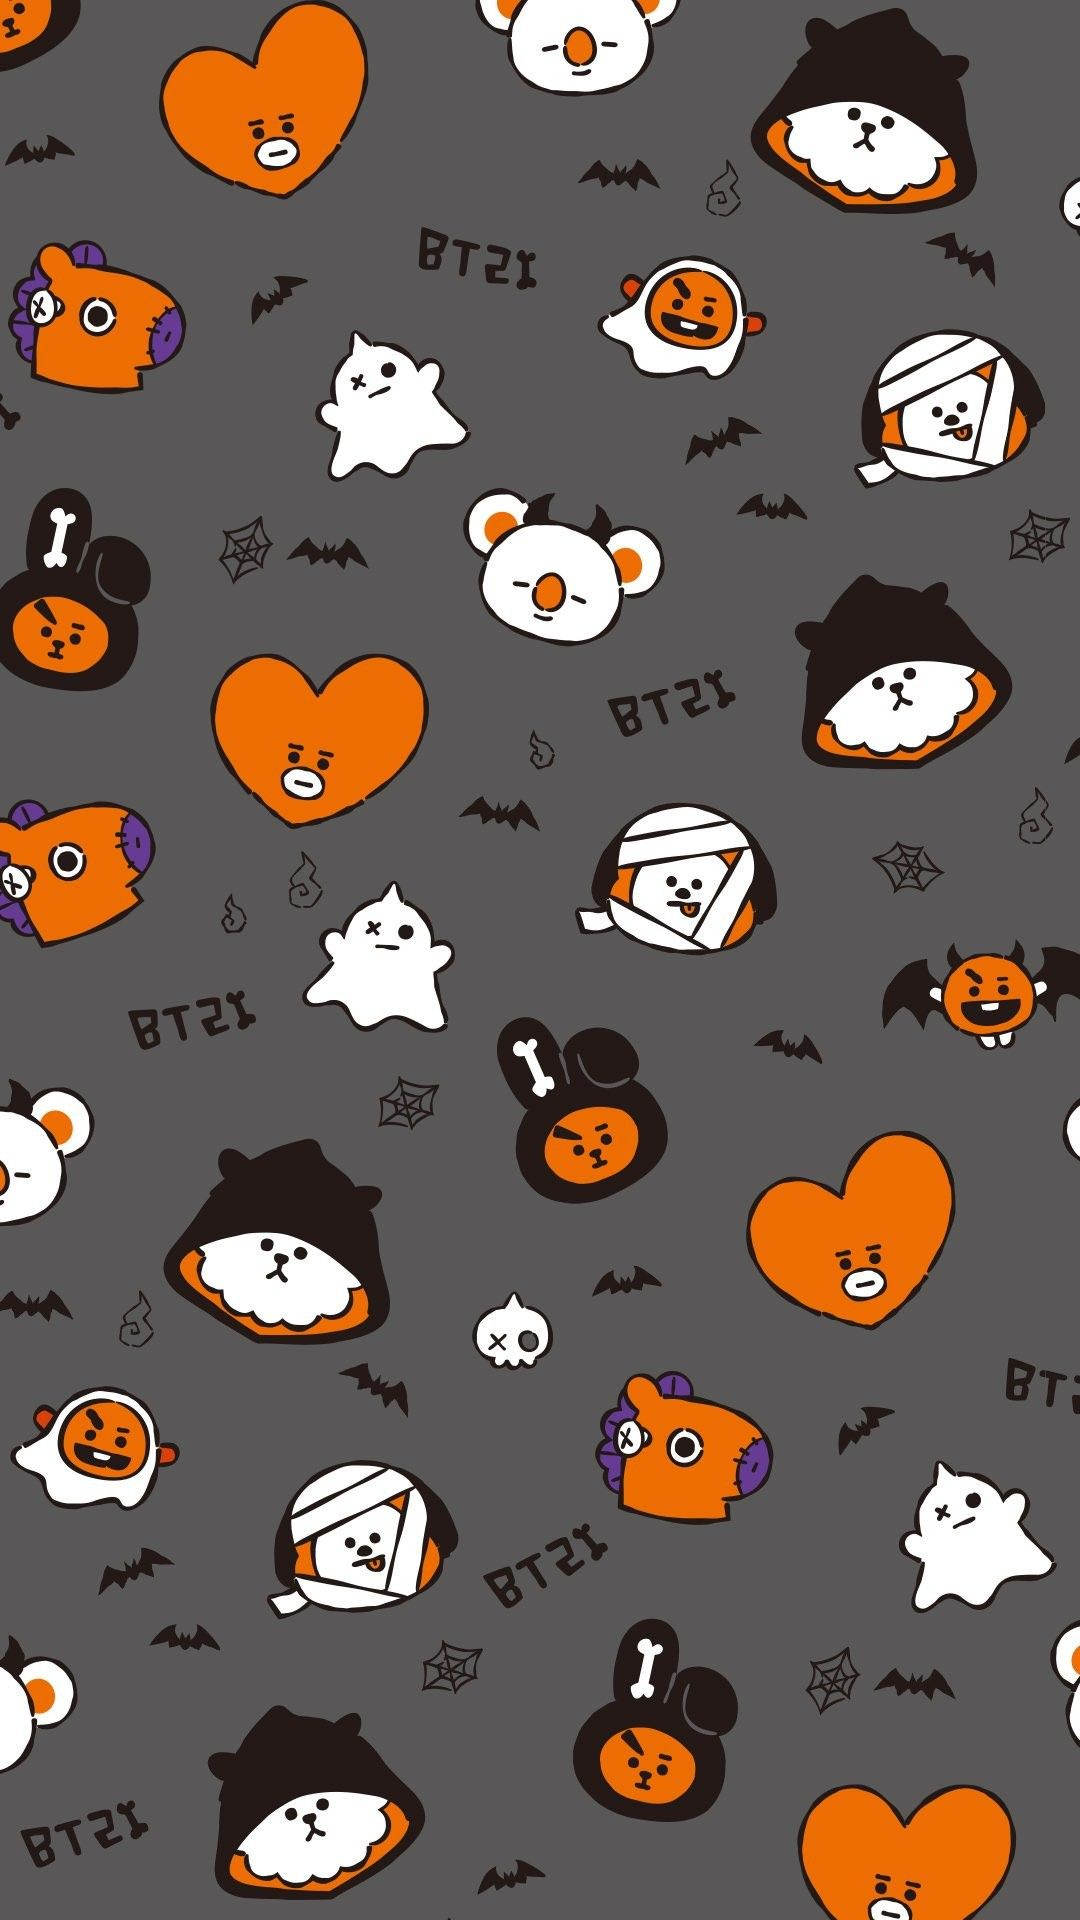 Bt21 Oficial Twitter Halloween Wallpaper Bts Halloween Halloween Wallpaper Iphone